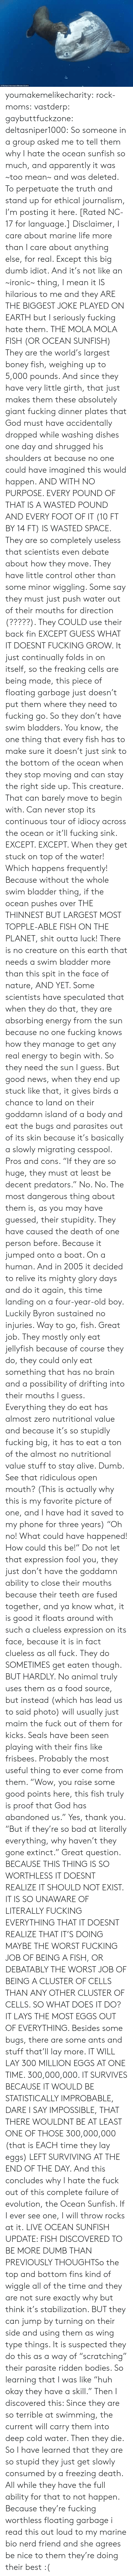 "useful: ORihad Herrma M  S youmakemelikecharity:  rock-moms:  vastderp:  gaybuttfuckzone:  deltasniper1000:  So someone in a group asked me to tell them why I hate the ocean sunfish so much, and apparently it was ~too mean~ and was deleted. To perpetuate the truth and stand up for ethical journalism, I'm posting it here. [Rated NC-17 for language.]  Disclaimer, I care about marine life more than I care about anything else, for real. Except this big dumb idiot. And it's not like an ~ironic~ thing, I mean it IS hilarious to me and they ARE THE BIGGEST JOKE PLAYED ON EARTH but I seriously fucking hate them.  THE MOLA MOLA FISH (OR OCEAN SUNFISH)  They are the world's largest boney fish, weighing up to 5,000 pounds. And since they have very little girth, that just makes them these absolutely giant fucking dinner plates that God must have accidentally dropped while washing dishes one day and shrugged his shoulders at because no one could have imagined this would happen. AND WITH NO PURPOSE. EVERY POUND OF THAT IS A WASTED POUND AND EVERY FOOT OF IT (10 FT BY 14 FT) IS WASTED SPACE.  They are so completely useless that scientists even debate about how they move. They have little control other than some minor wiggling. Some say they must just push water out of their mouths for direction (?????). They COULD use their back fin EXCEPT GUESS WHAT IT DOESNT FUCKING GROW. It just continually folds in on itself, so the freaking cells are being made, this piece of floating garbage just doesn't put them where they need to fucking go.   So they don't have swim bladders. You know, the one thing that every fish has to make sure it doesn't just sink to the bottom of the ocean when they stop moving and can stay the right side up. This creature. That can barely move to begin with. Can never stop its continuous tour of idiocy across the ocean or it'll fucking sink. EXCEPT. EXCEPT. When they get stuck on top of the water! Which happens frequently! Because without the whole swim bladder thing, if the ocean pushes over THE THINNEST BUT LARGEST MOST TOPPLE-ABLE FISH ON THE PLANET, shit outta luck! There is no creature on this earth that needs a swim bladder more than this spit in the face of nature, AND YET. Some scientists have speculated that when they do that, they are absorbing energy from the sun because no one fucking knows how they manage to get any real energy to begin with. So they need the sun I guess. But good news, when they end up stuck like that, it gives birds a chance to land on their goddamn island of a body and eat the bugs and parasites out of its skin because it's basically a slowly migrating cesspool. Pros and cons.   ""If they are so huge, they must at least be decent predators."" No. No. The most dangerous thing about them is, as you may have guessed, their stupidity. They have caused the death of one person before. Because it jumped onto a boat. On a human. And in 2005 it decided to relive its mighty glory days and do it again, this time landing on a four-year-old boy. Luckily Byron sustained no injuries. Way to go, fish. Great job.  They mostly only eat jellyfish because of course they do, they could only eat something that has no brain and a possibility of drifting into their mouths I guess. Everything they do eat has almost zero nutritional value and because it's so stupidly fucking big, it has to eat a ton of the almost no nutritional value stuff to stay alive. Dumb. See that ridiculous open mouth? (This is actually why this is my favorite picture of one, and I have had it saved to my phone for three years) ""Oh no! What could have happened! How could this be!"" Do not let that expression fool you, they just don't have the goddamn ability to close their mouths because their teeth are fused together, and ya know what, it is good it floats around with such a clueless expression on its face, because it is in fact clueless as all fuck.  They do SOMETIMES get eaten though. BUT HARDLY. No animal truly uses them as a food source, but instead (which has lead us to said photo) will usually just maim the fuck out of them for kicks. Seals have been seen playing with their fins like frisbees. Probably the most useful thing to ever come from them.   ""Wow, you raise some good points here, this fish truly is proof that God has abandoned us."" Yes, thank you. ""But if they're so bad at literally everything, why haven't they gone extinct."" Great question.   BECAUSE THIS THING IS SO WORTHLESS IT DOESNT REALIZE IT SHOULD NOT EXIST. IT IS SO UNAWARE OF LITERALLY FUCKING EVERYTHING THAT IT DOESNT REALIZE THAT IT'S DOING MAYBE THE WORST FUCKING JOB OF BEING A FISH, OR DEBATABLY THE WORST JOB OF BEING A CLUSTER OF CELLS THAN ANY OTHER CLUSTER OF CELLS. SO WHAT DOES IT DO? IT LAYS THE MOST EGGS OUT OF EVERYTHING. Besides some bugs, there are some ants and stuff that'll lay more. IT WILL LAY 300 MILLION EGGS AT ONE TIME. 300,000,000. IT SURVIVES BECAUSE IT WOULD BE STATISTICALLY IMPROBABLE, DARE I SAY IMPOSSIBLE, THAT THERE WOULDNT BE AT LEAST ONE OF THOSE 300,000,000 (that is EACH time they lay eggs) LEFT SURVIVING AT THE END OF THE DAY.   And this concludes why I hate the fuck out of this complete failure of evolution, the Ocean Sunfish. If I ever see one, I will throw rocks at it.   LIVE OCEAN SUNFISH UPDATE: FISH DISCOVERED TO BE MORE DUMB THAN PREVIOUSLY THOUGHTSo  the top and bottom fins kind of wiggle all of the time and they are not  sure exactly why but think it's stabilization. BUT they can jump by  turning on their side and using them as  wing type things. It is suspected they do this as a way of ""scratching""  their parasite ridden bodies. So learning that I was like ""huh okay they  have a skill."" Then I discovered this: Since they  are so terrible at swimming, the current will carry them into deep cold  water. Then they die. So I have learned that they are so stupid they  just get slowly consumed by a freezing death. All while they have the  full ability for that to not happen. Because they're fucking worthless  floating garbage    i read this out loud to my marine bio nerd friend and she agrees   be nice to them they're doing their best :("